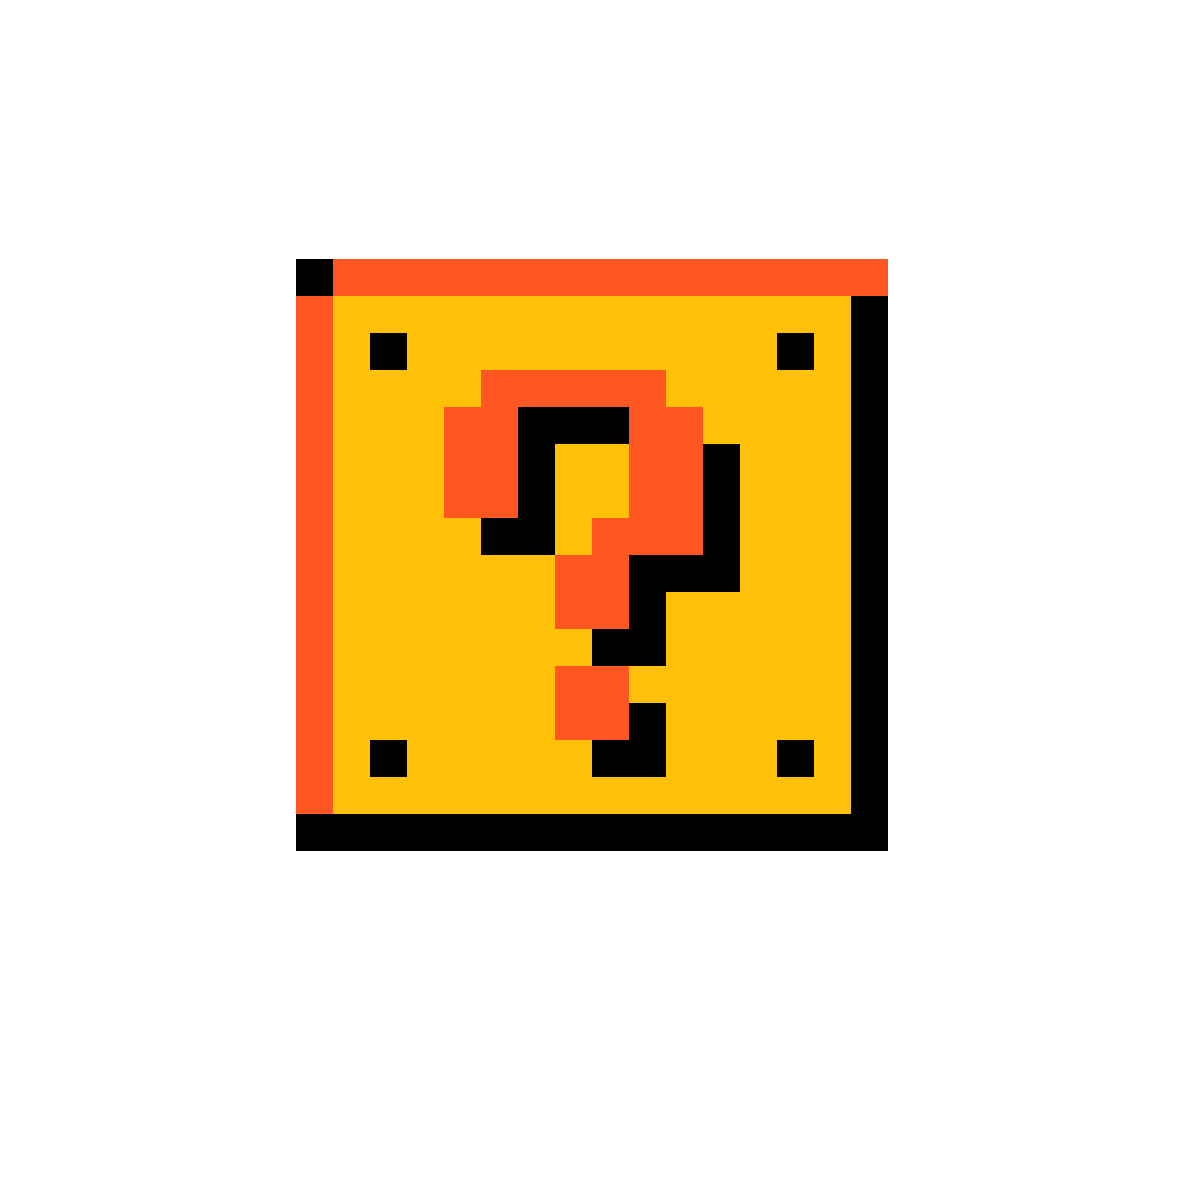 Pixel Mario Question Mark Block By Lord-Vortech